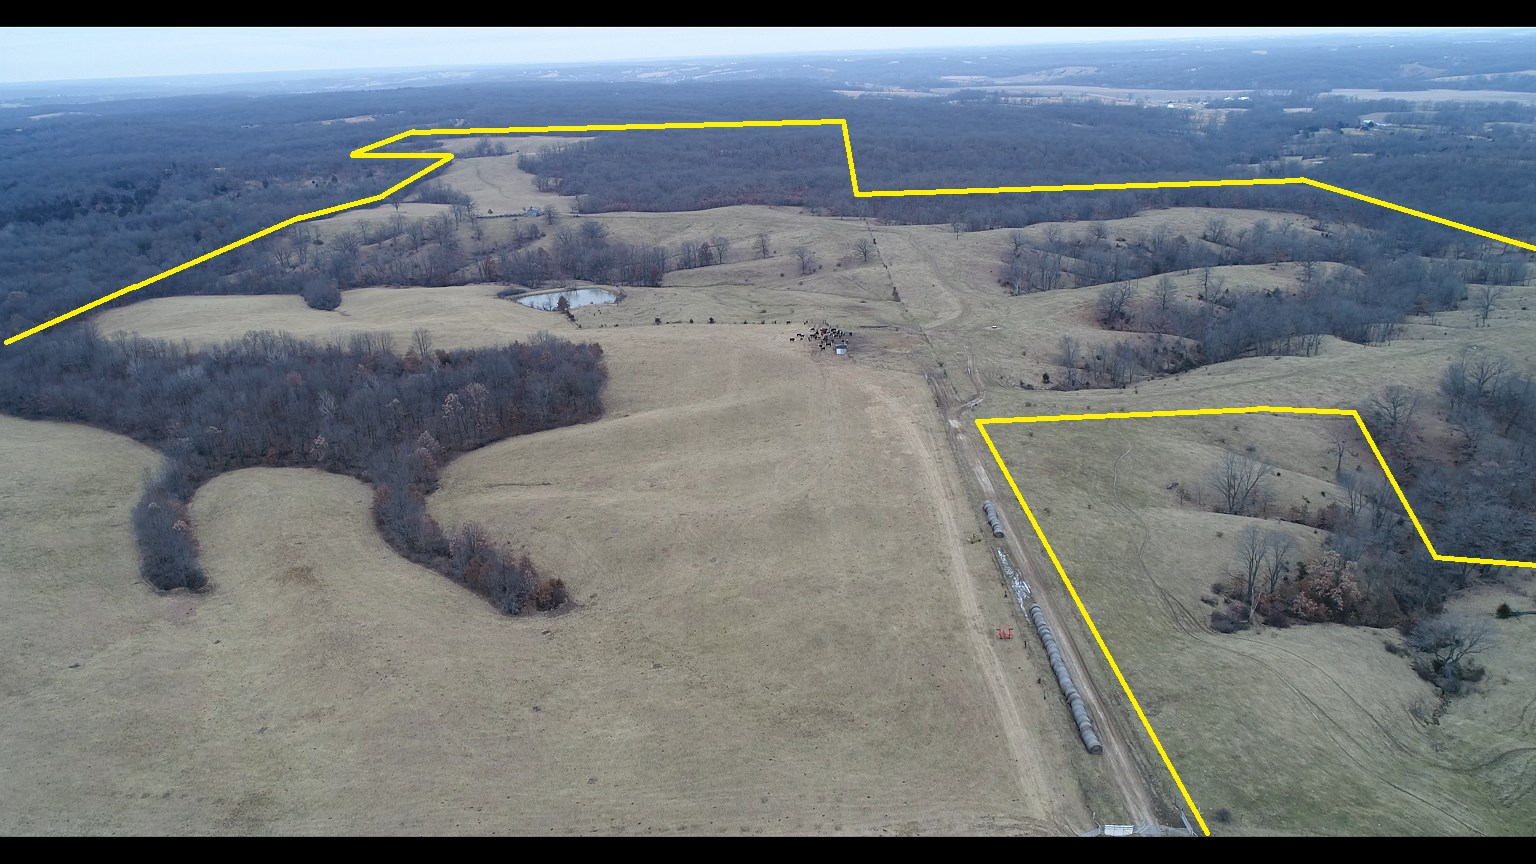 NORTHERN MISSOURI PASTURE LAND FOR SALE, MO HUNTING LAND